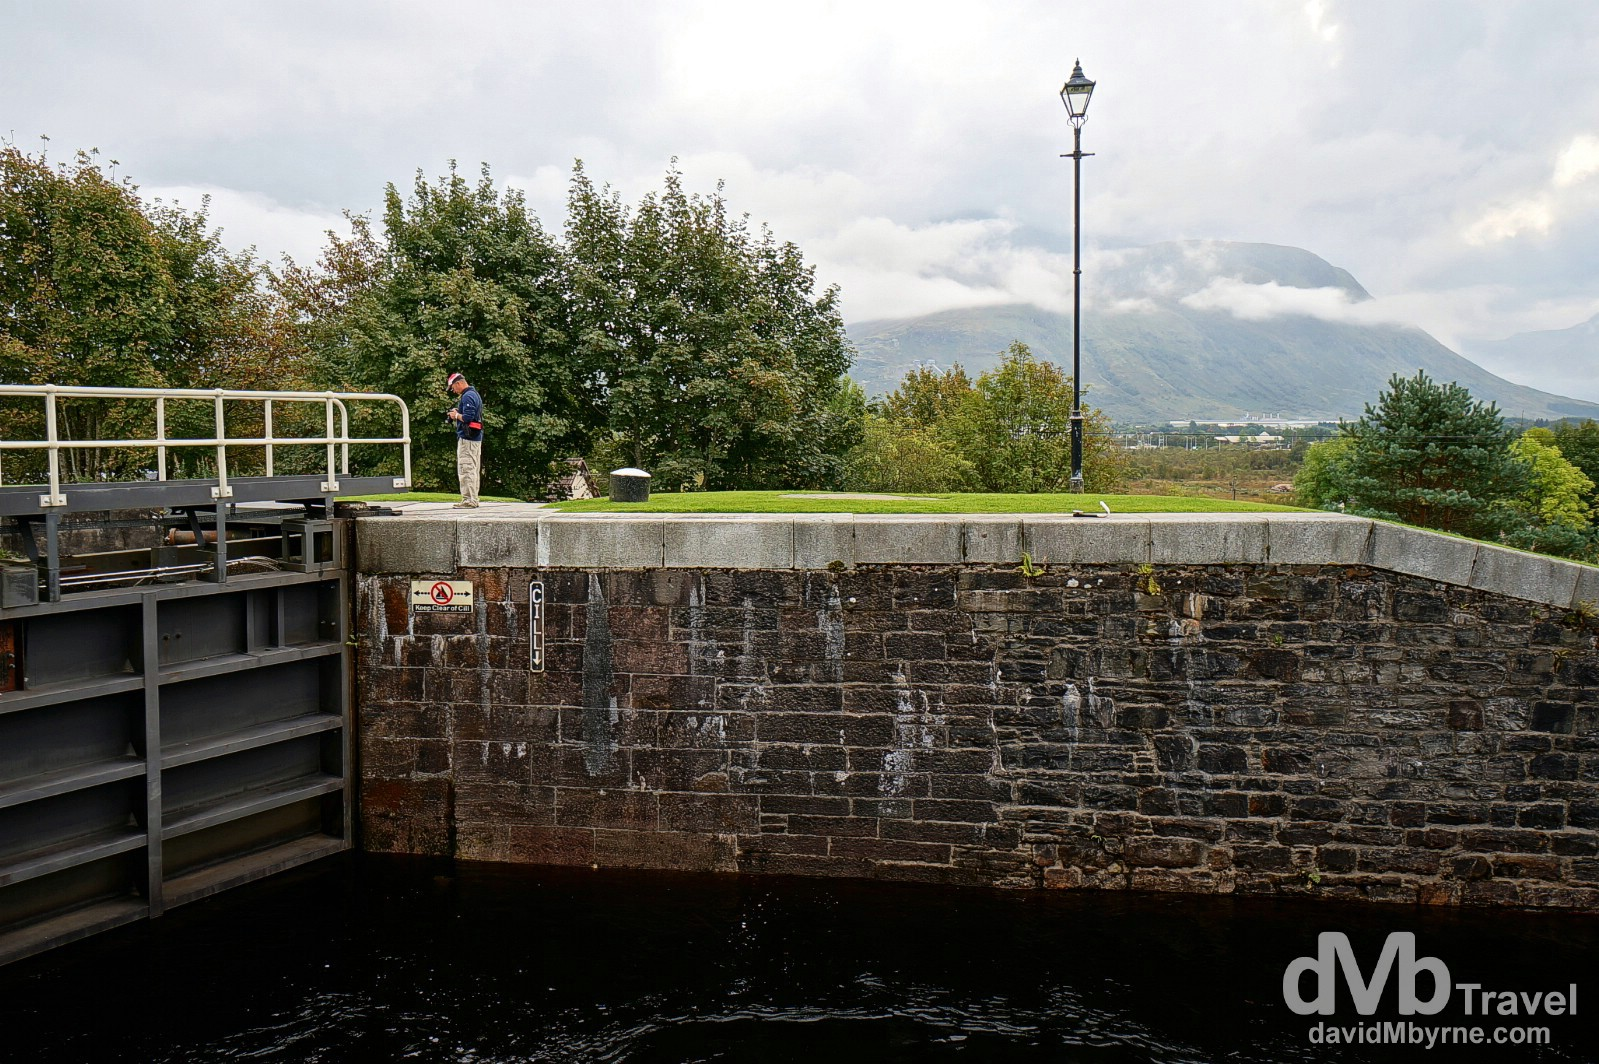 Ben Nevis, the tallest peak in the United Kingdom, as seen from the Neptune's Staircase lock of the Caledonian Canal in Banavie, Highland, Scotland. September 18, 2014.